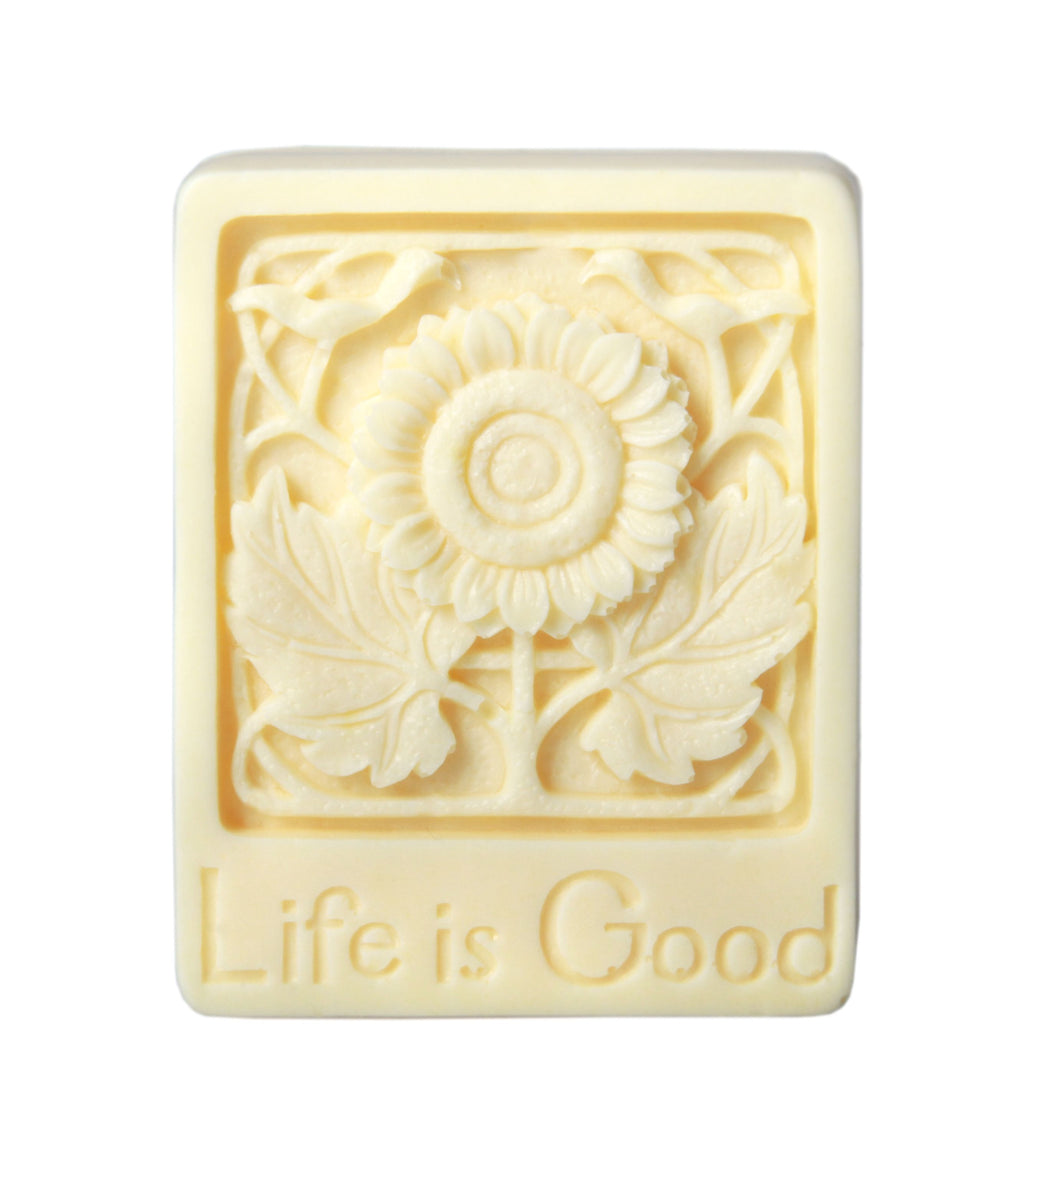 Life is Good Glycerin Soap